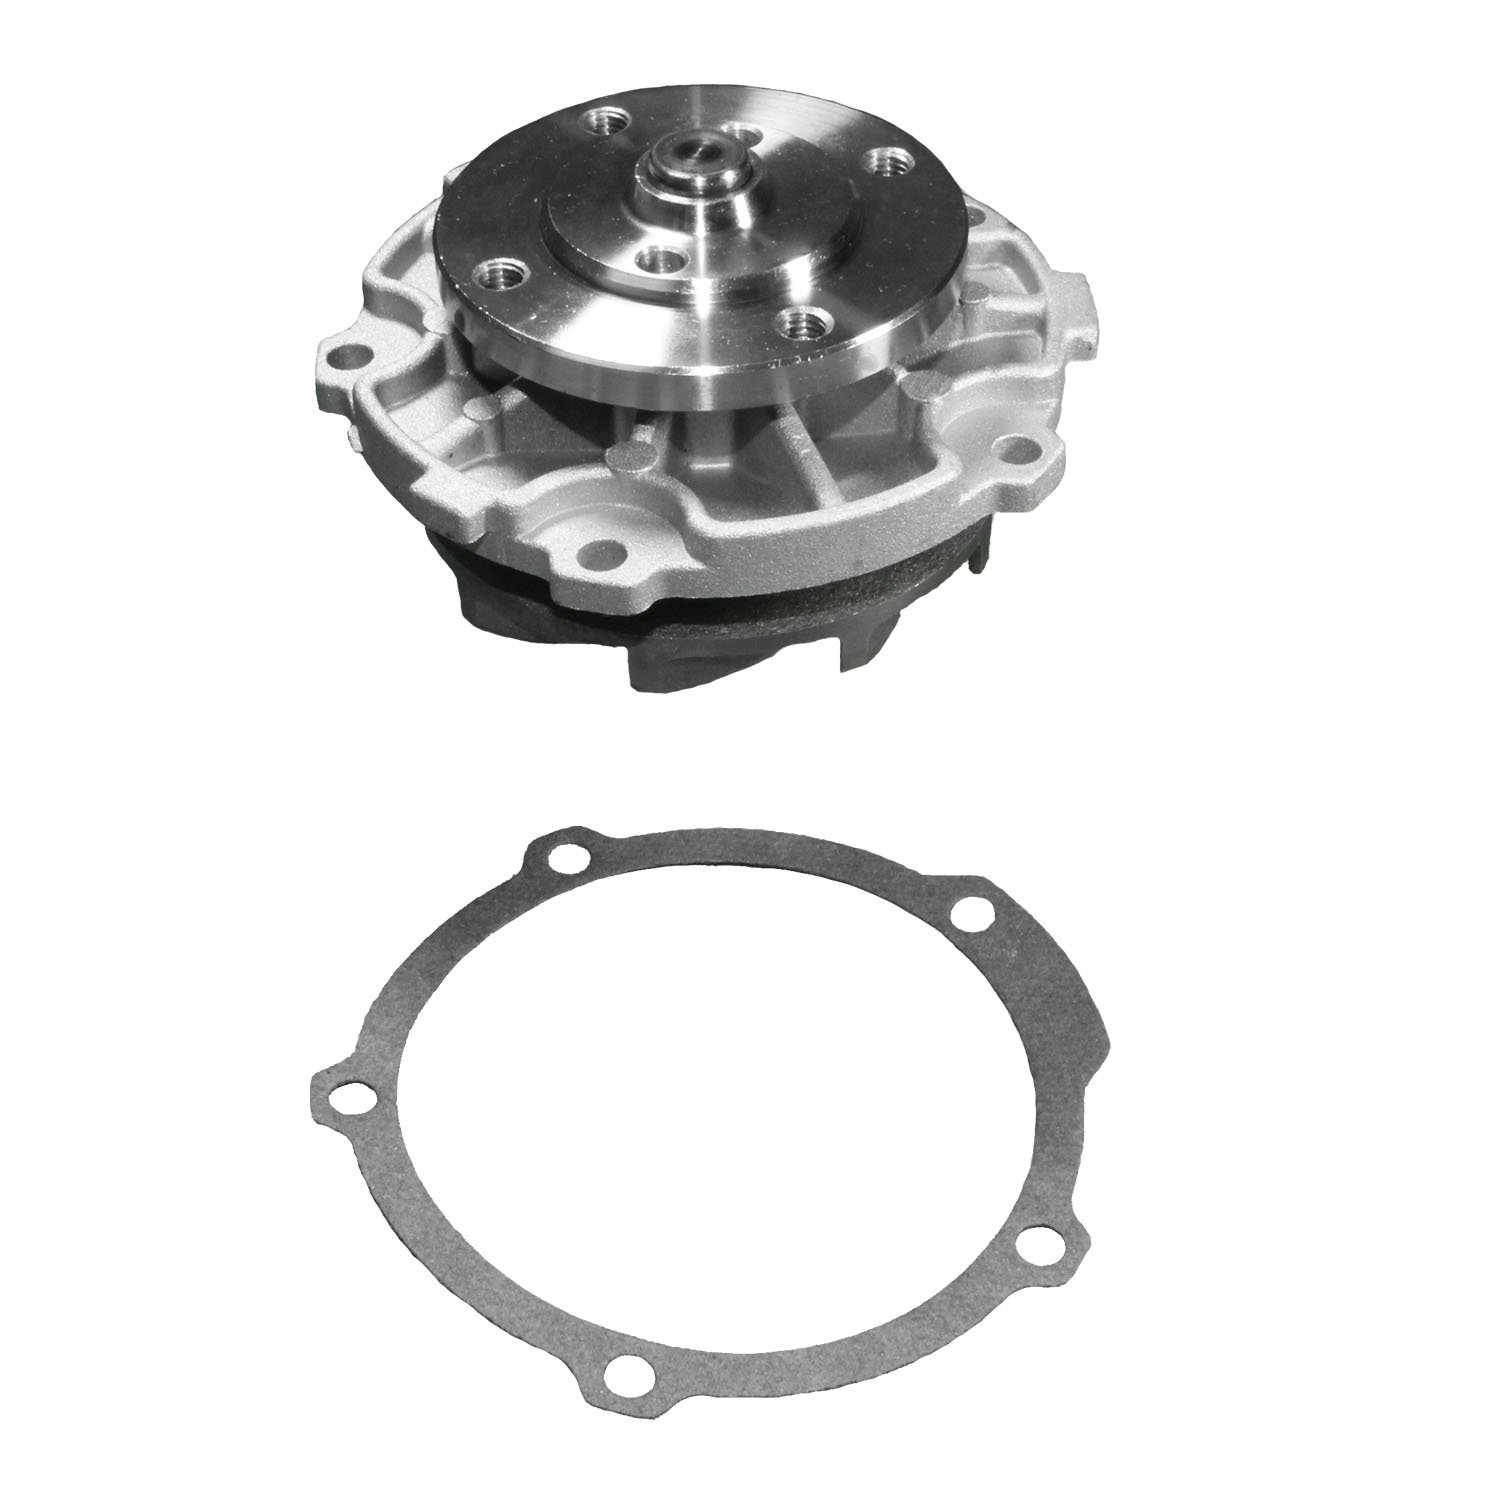 ACDelco 252-721 Professional Water Pump Kit